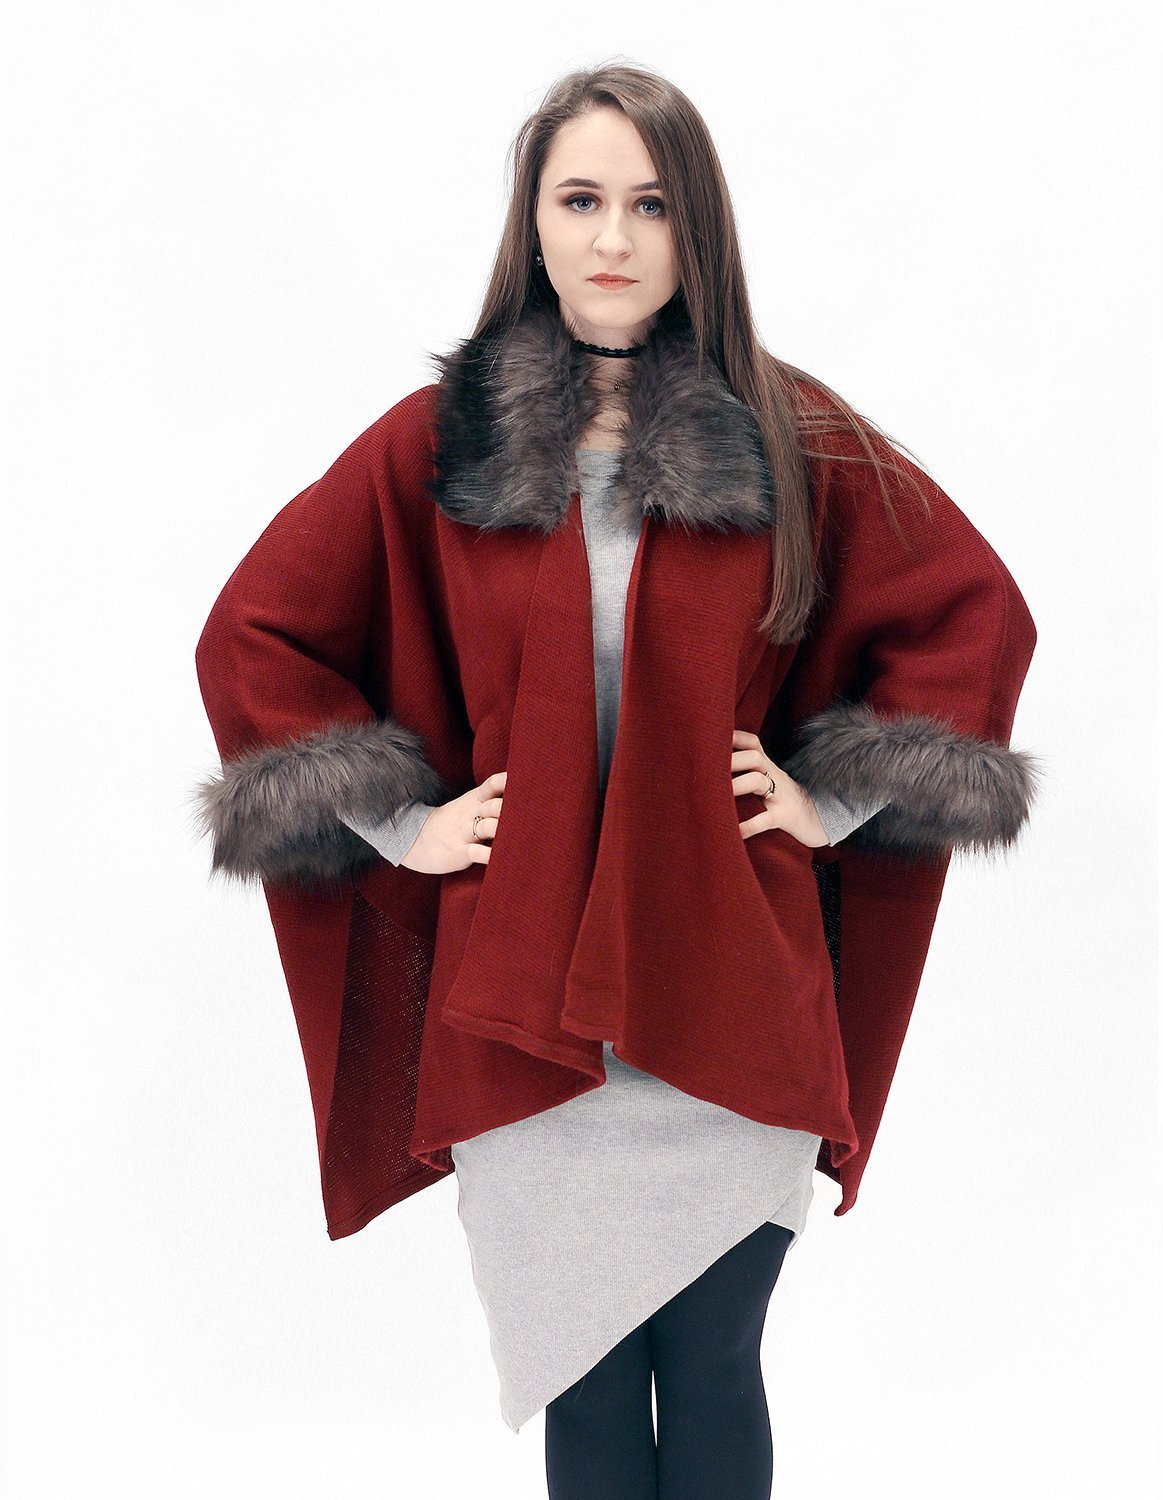 Elegant red and dark brown half-woolen cardigan with high quality faux fur - made by Irena Fashion